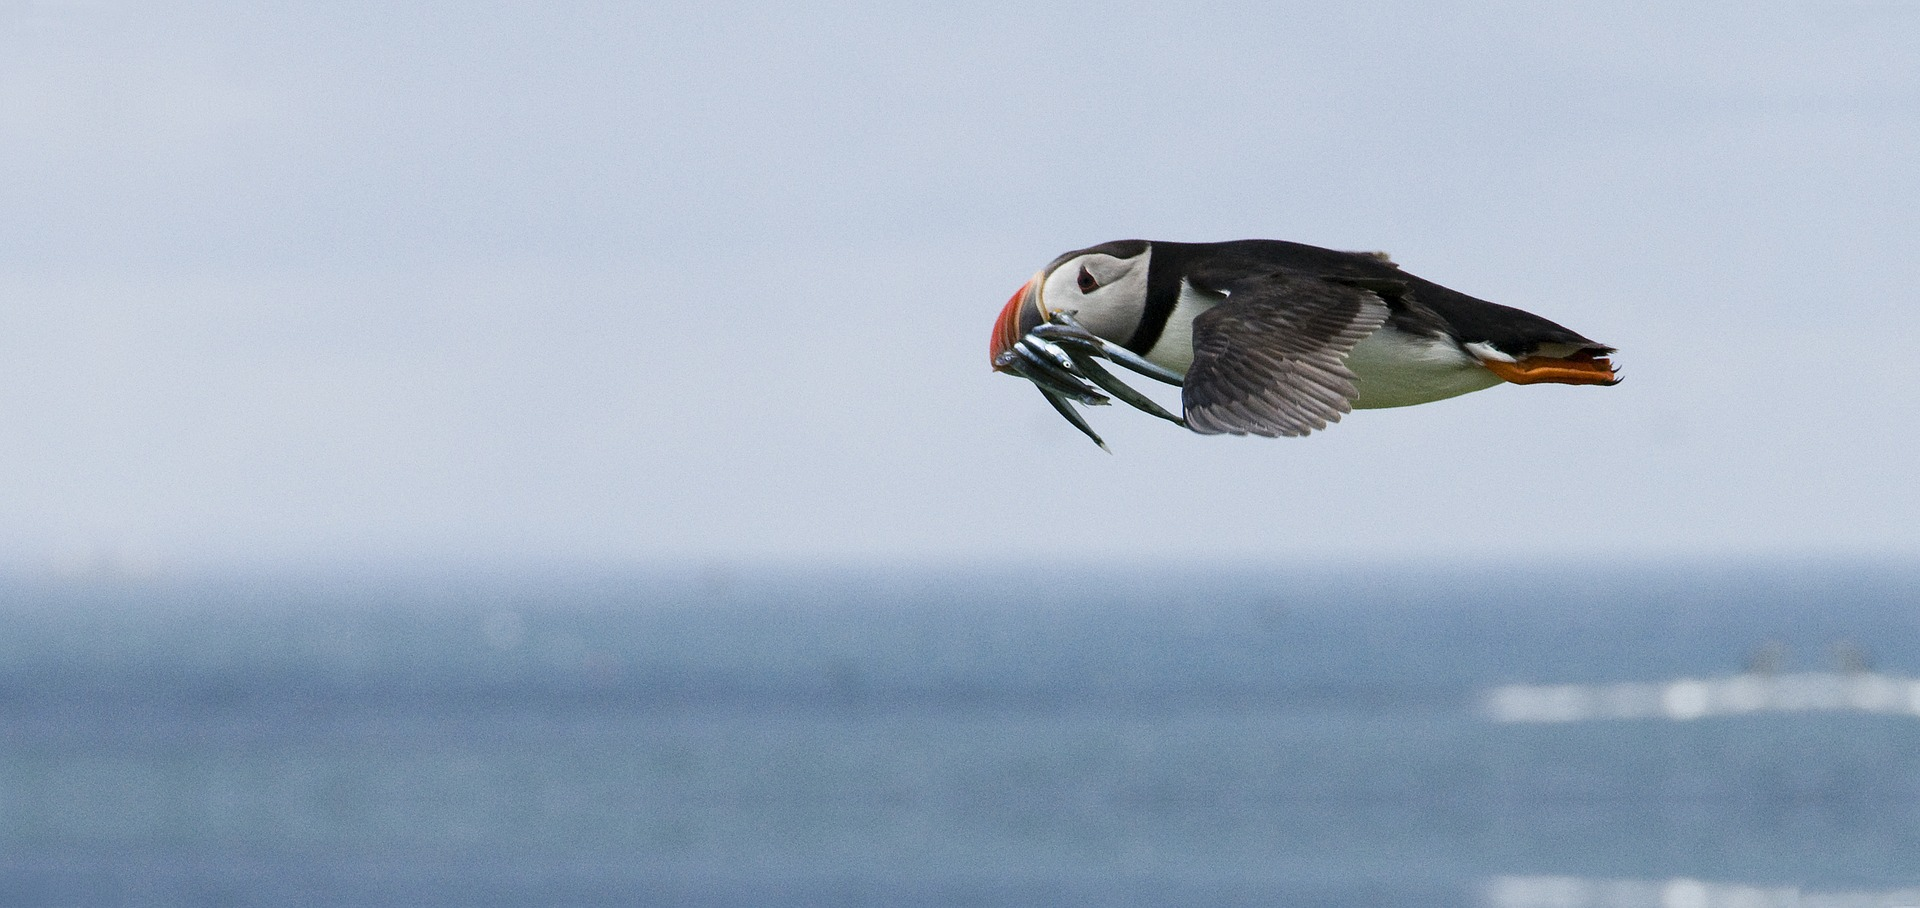 Flying bird with fish in its beak